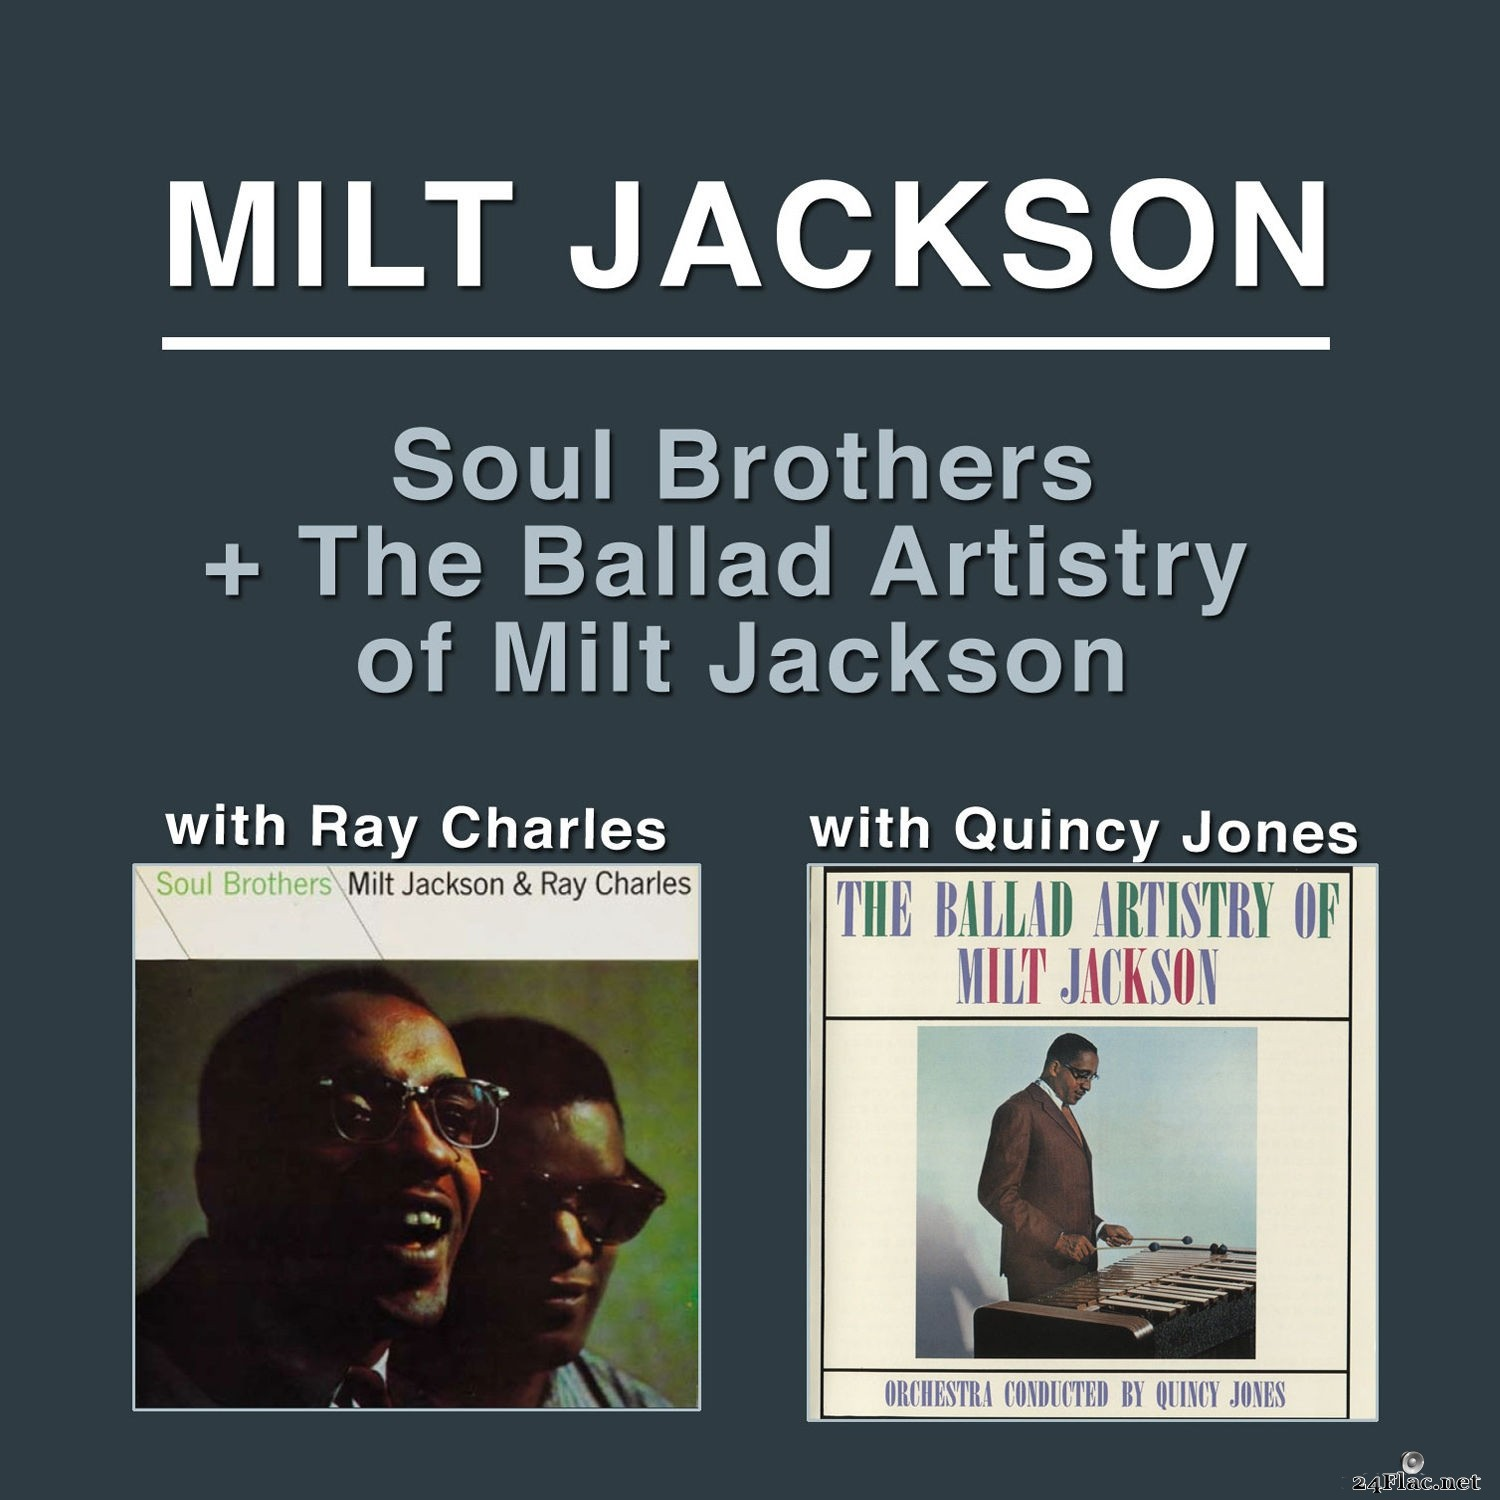 Milt Jackson - Soul Brothers (with Ray Charles) + the Ballad Artistry of Milt Jackson [with Orchestra Conducted by Quincy Jones] (2013) FLAC